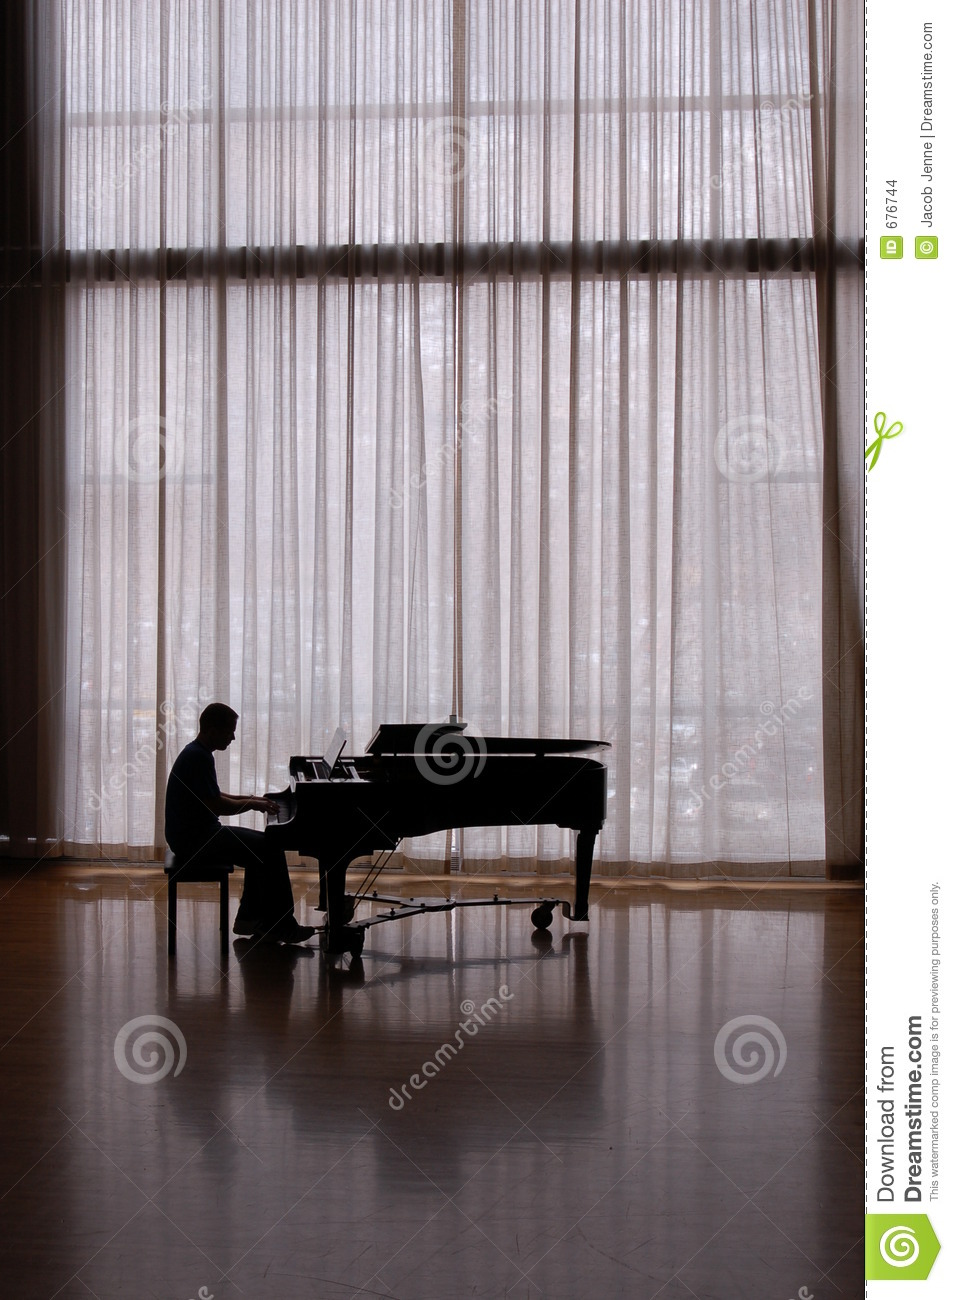 Silhouette pianist in a sunlit studio playing a baby grand piano Playing Piano Silhouette